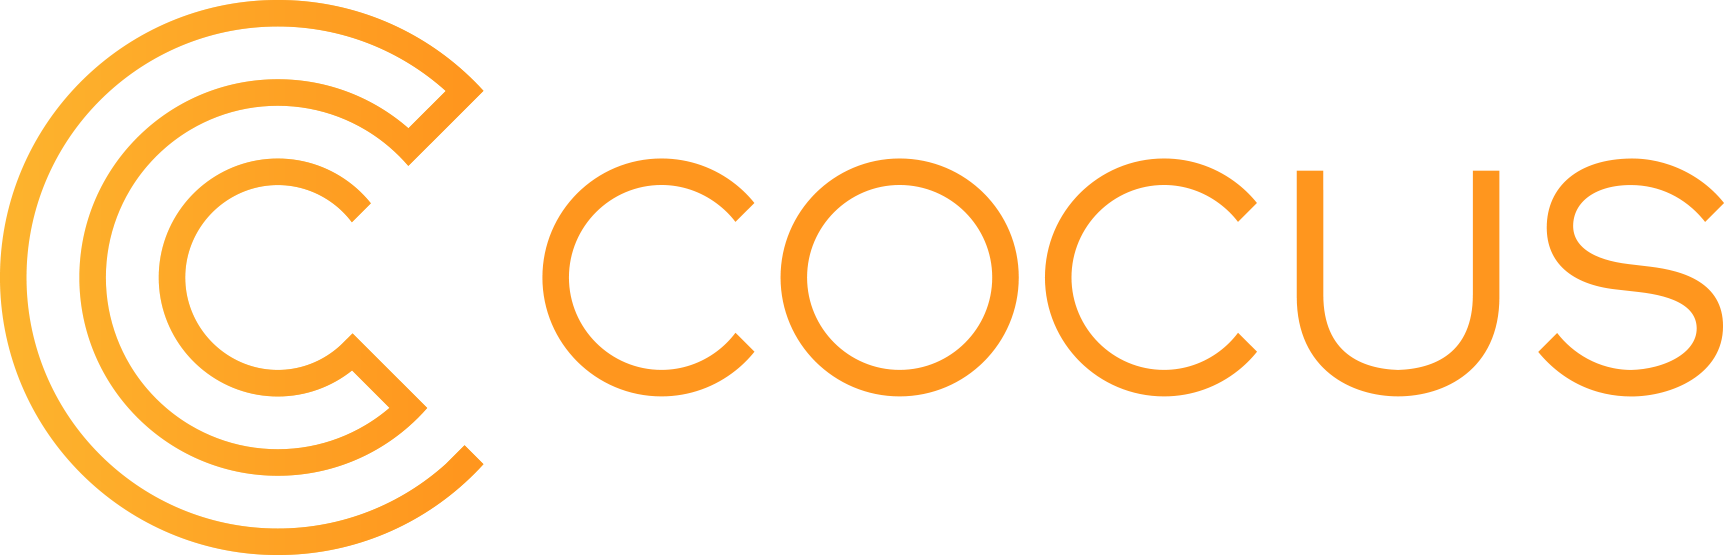 Kubernetes Engineer (m/w/d) - Job Düsseldorf, Eschborn - Jobs bei uns | COCUS AG - Application form